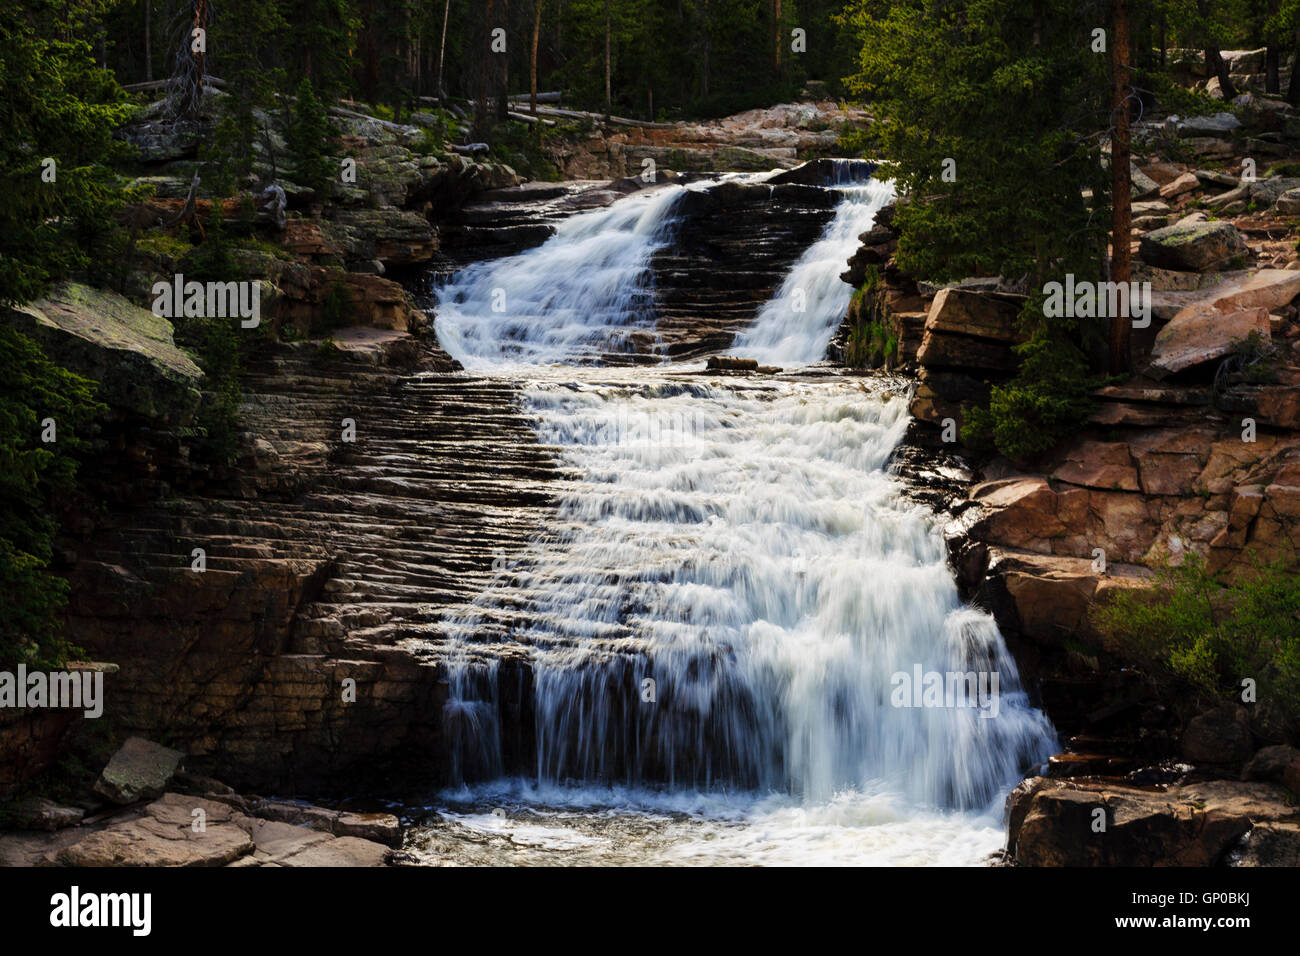 Provo River Falls Overlook, Mirror Lake Scenic Byway, Uinta-Wasatch-Cache National Forest Utah - Stock Image